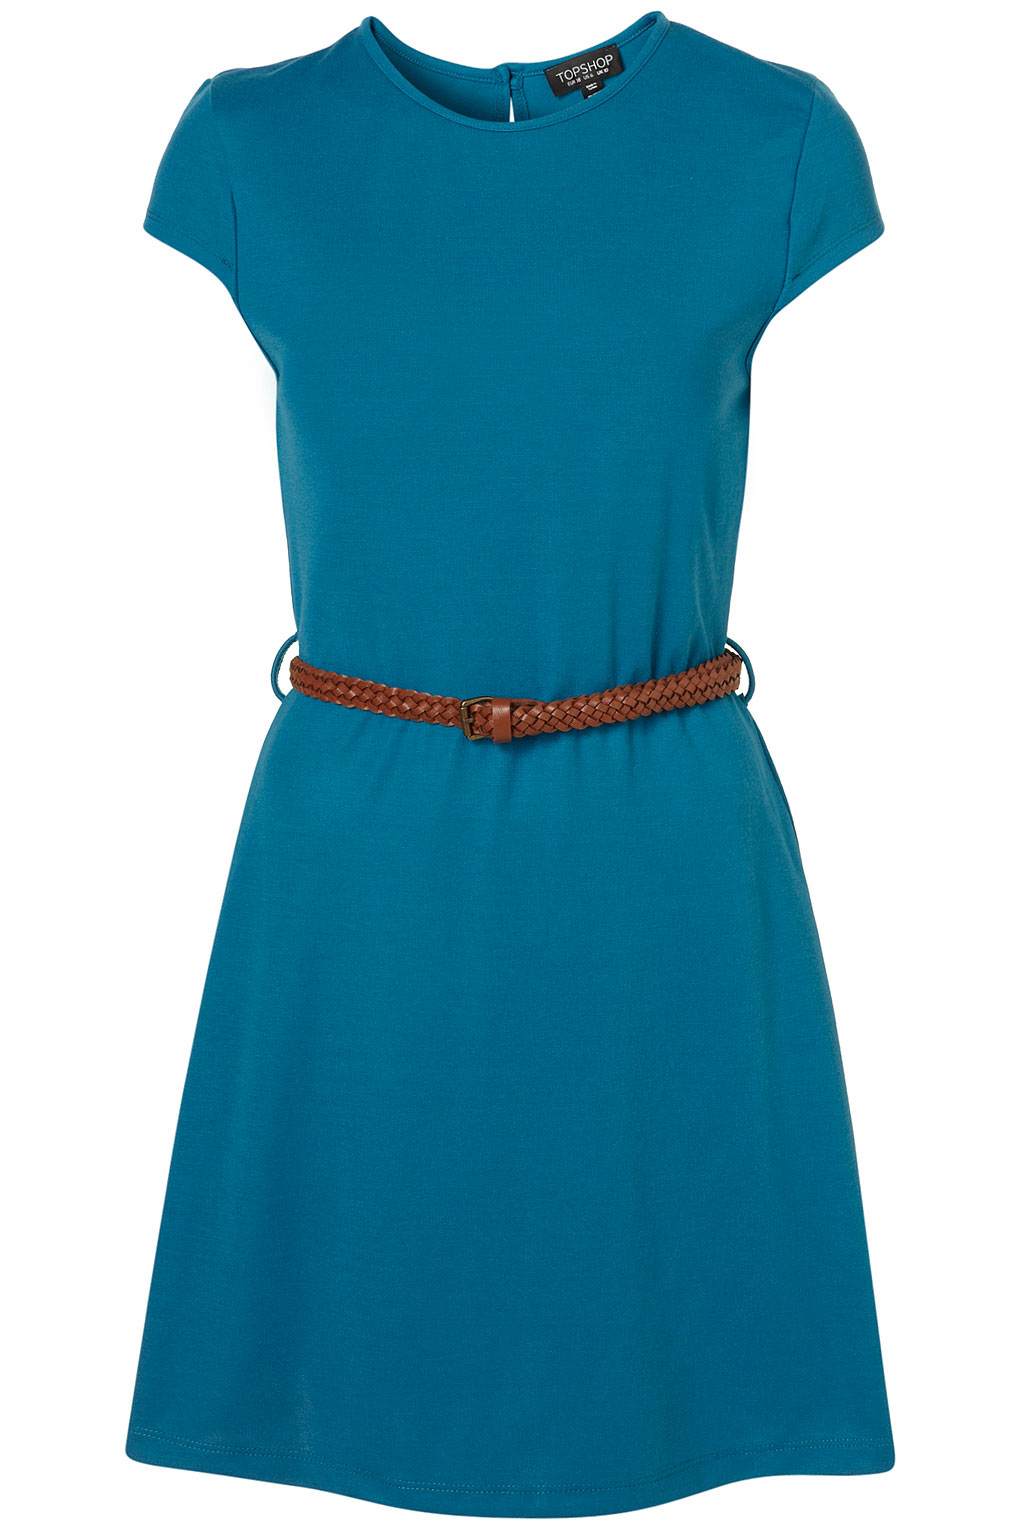 Cheap dress and skirts - Topshop Teal Blue Belted Tea Dress Toppingyou Blog